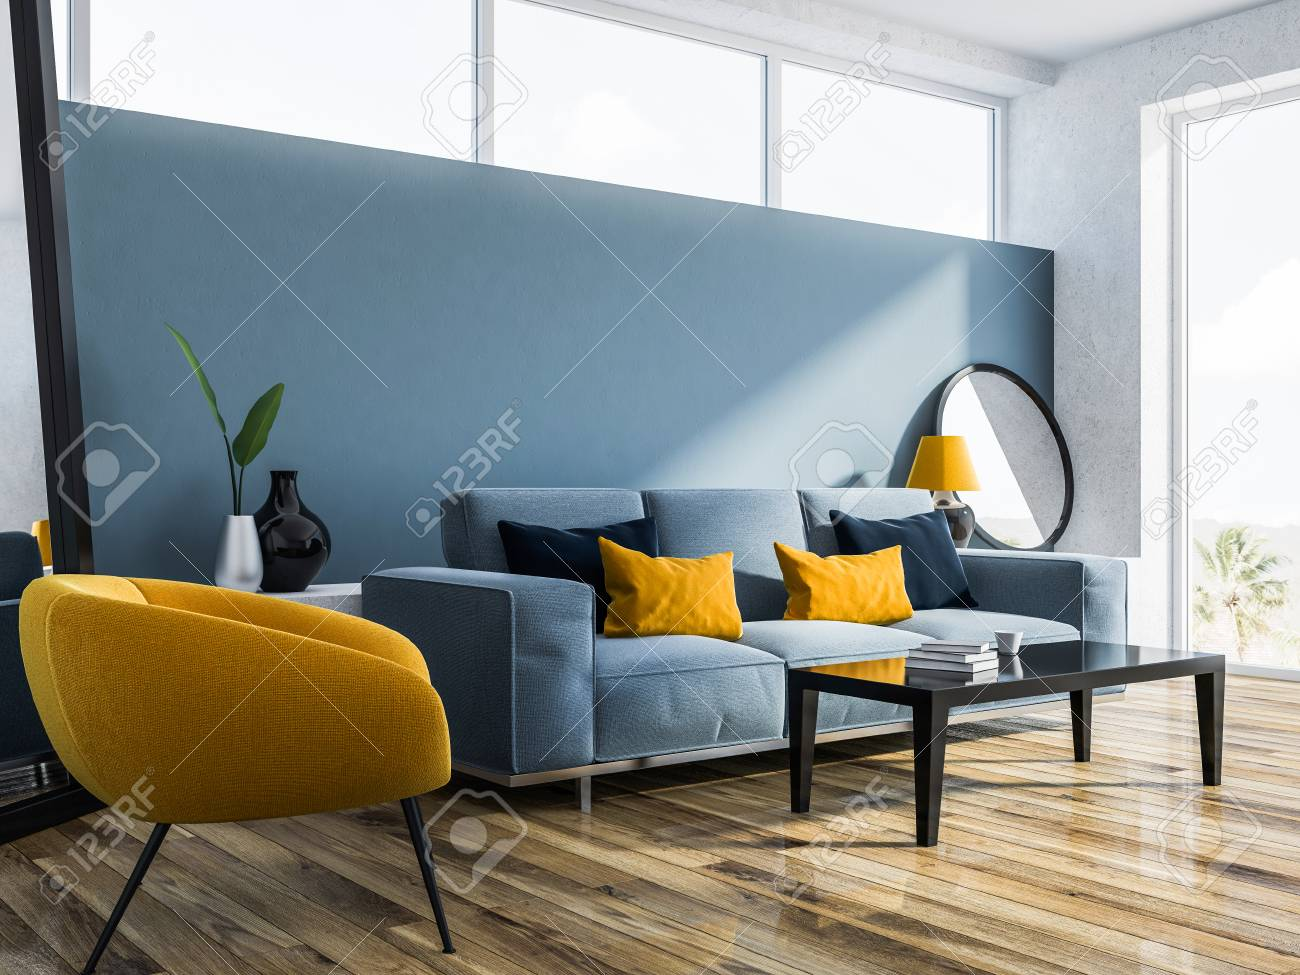 Modern Living Room Interior With Blue Walls A Wooden Floor And Stock Photo Picture And Royalty Free Image Image 106225687